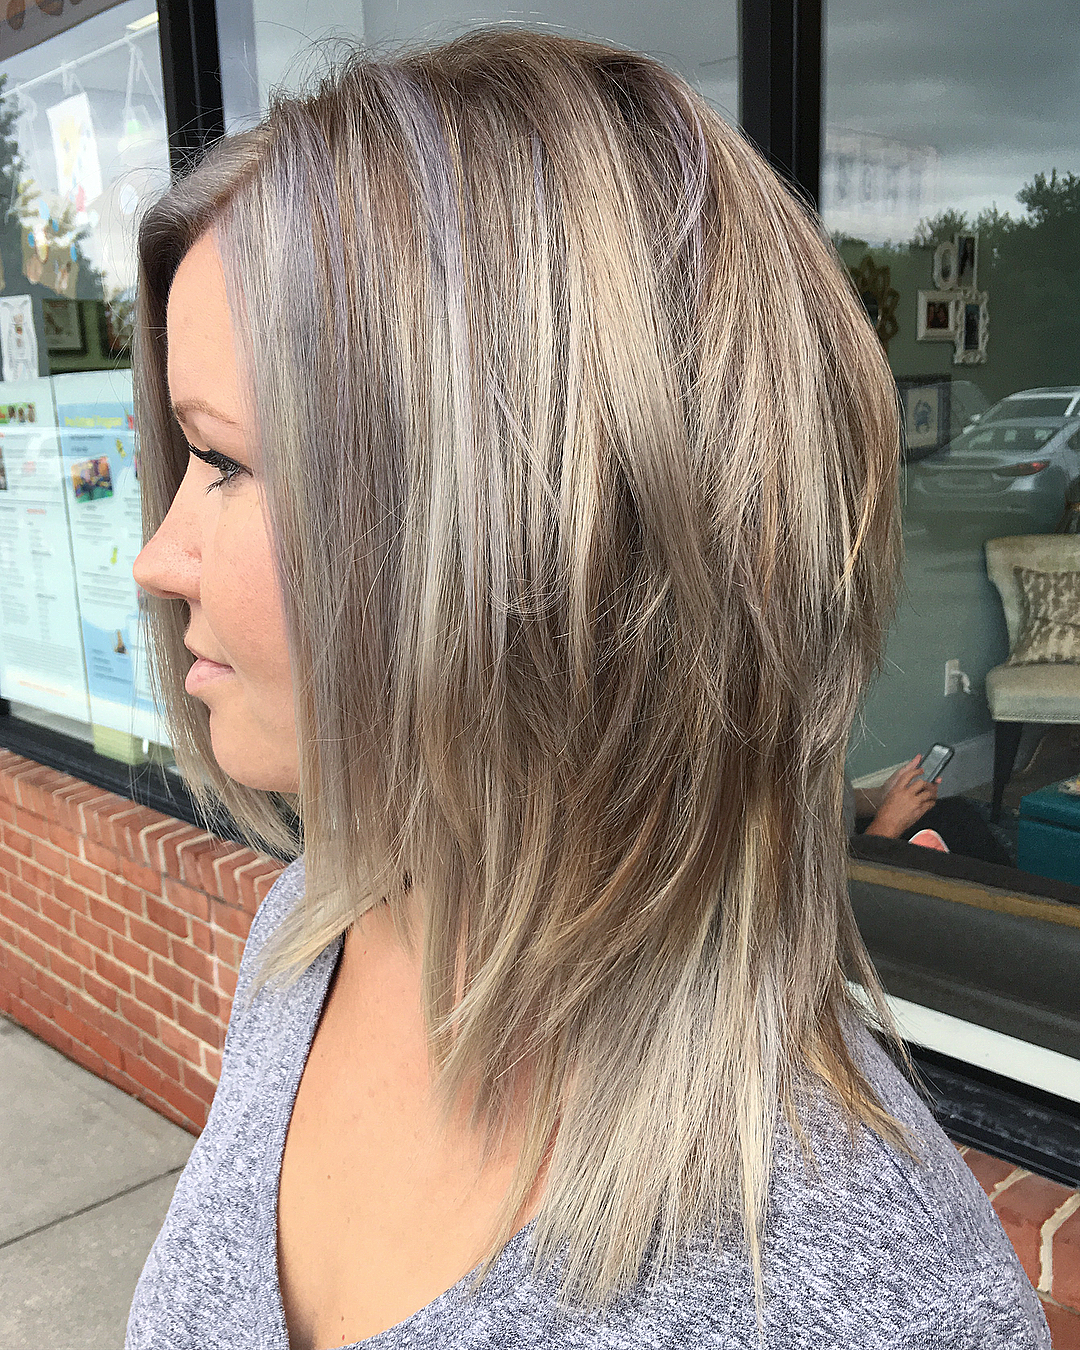 Blonde Layered Hairstyle with Gray Highlights